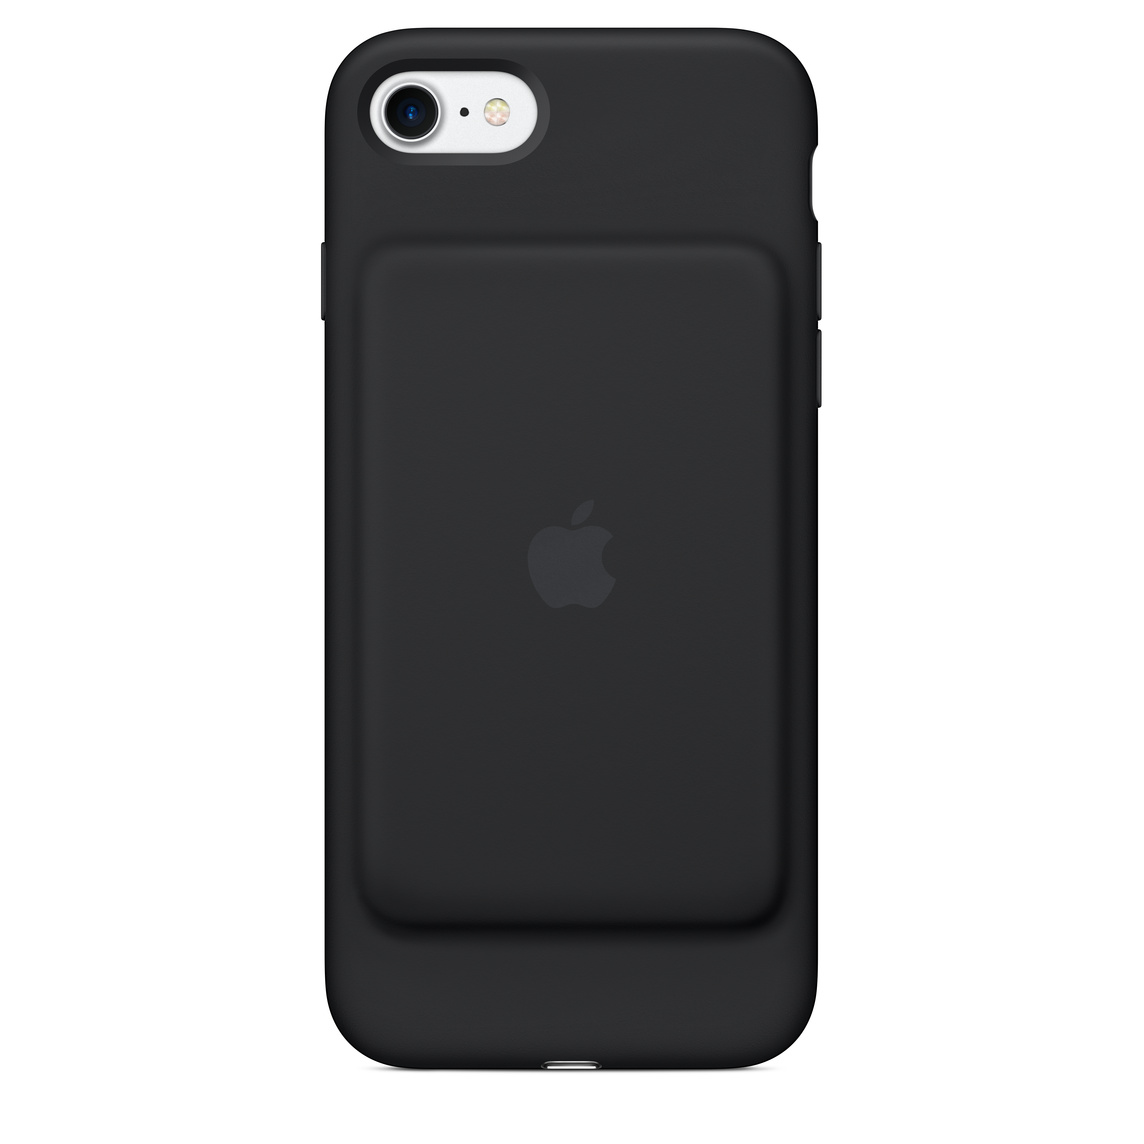 the best attitude 12569 9c991 iPhone 7 Smart Battery Case - Black